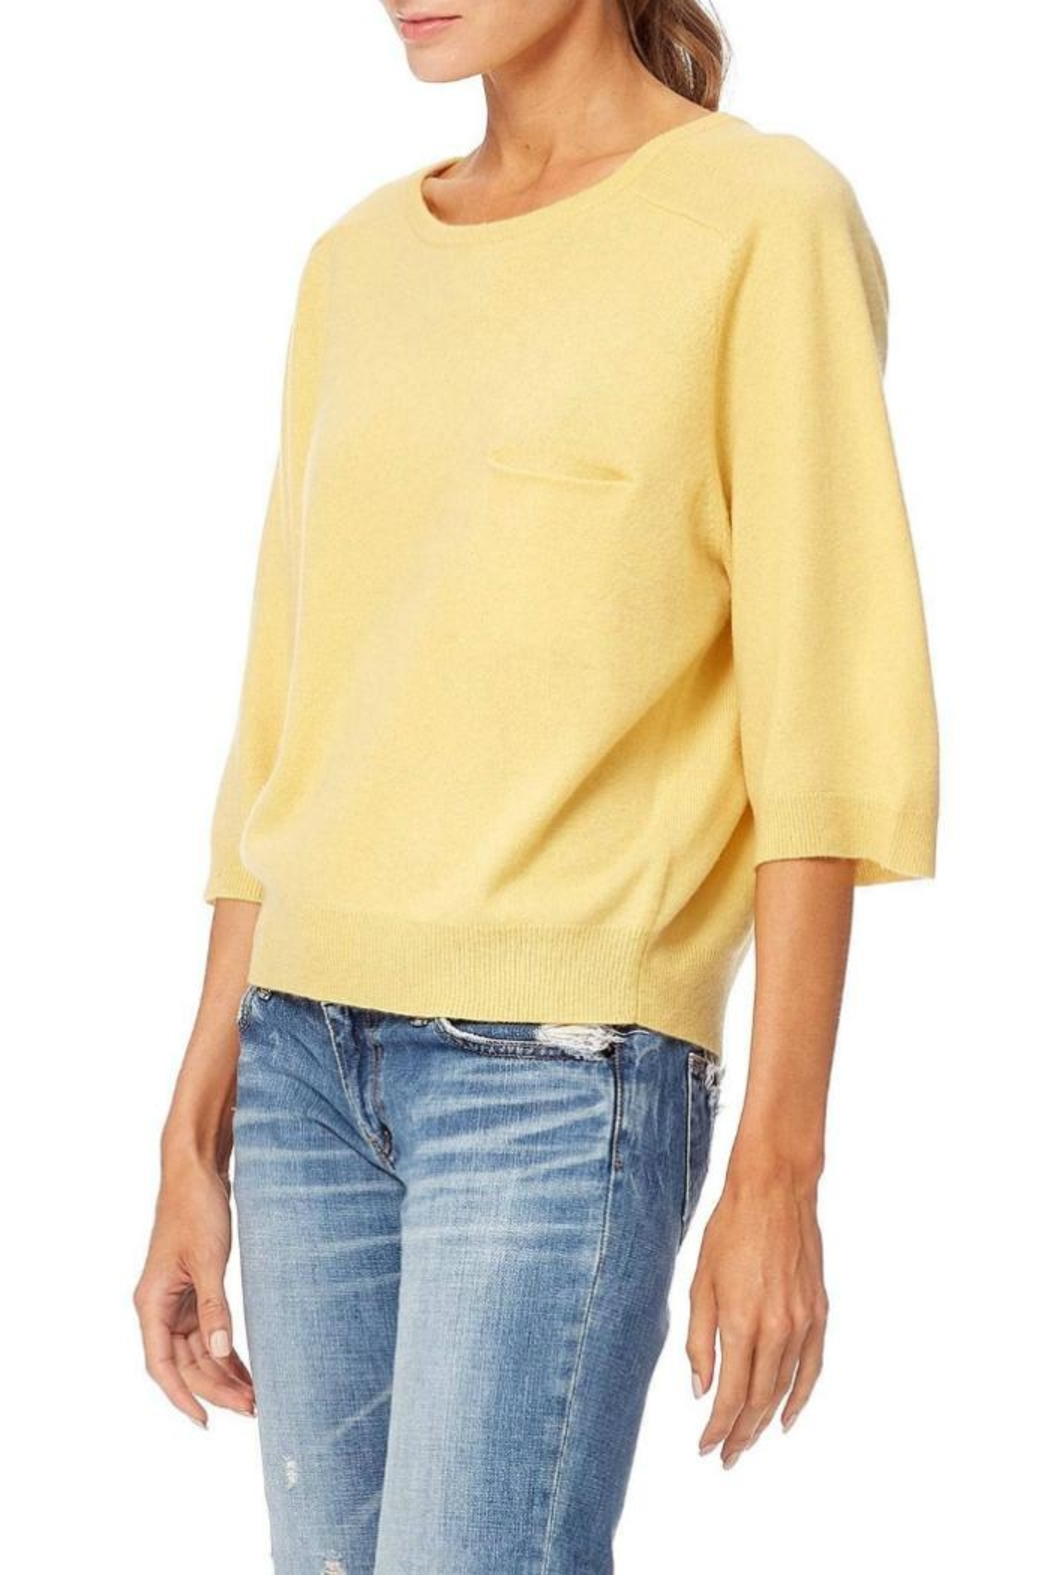 360 Cashmere Thalia Sweater - Side Cropped Image